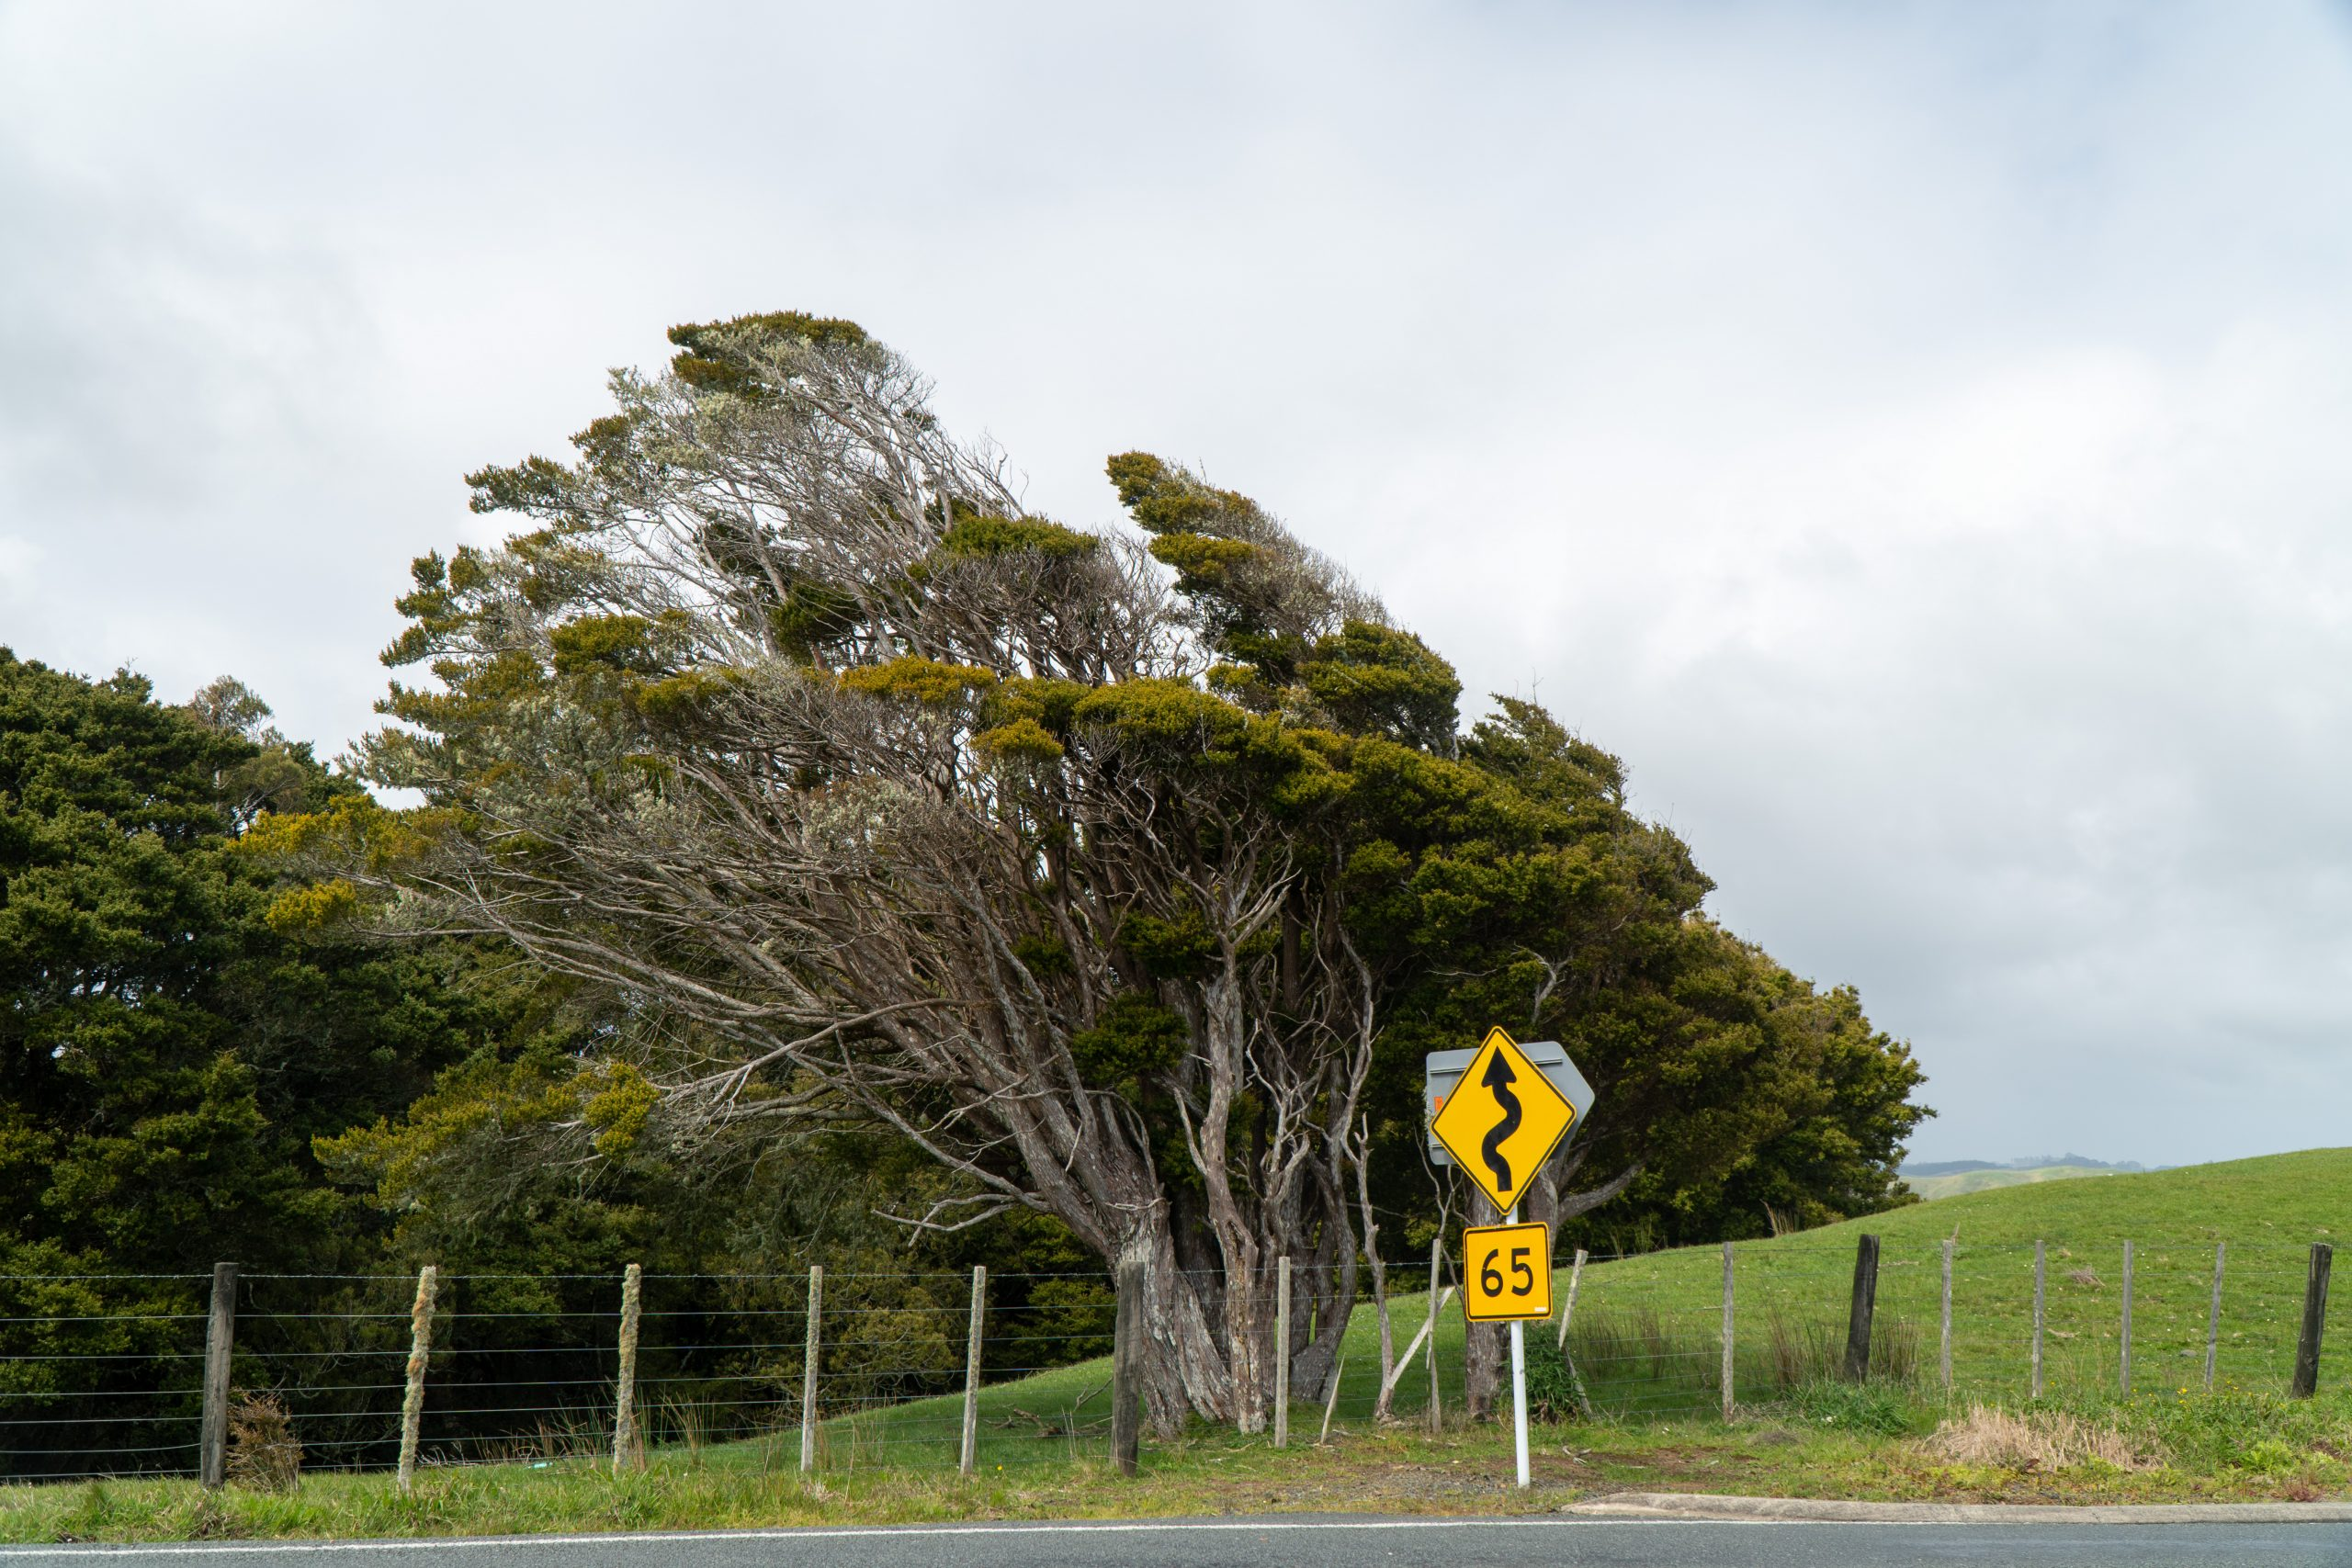 Windswept trees along road in New Zealand.